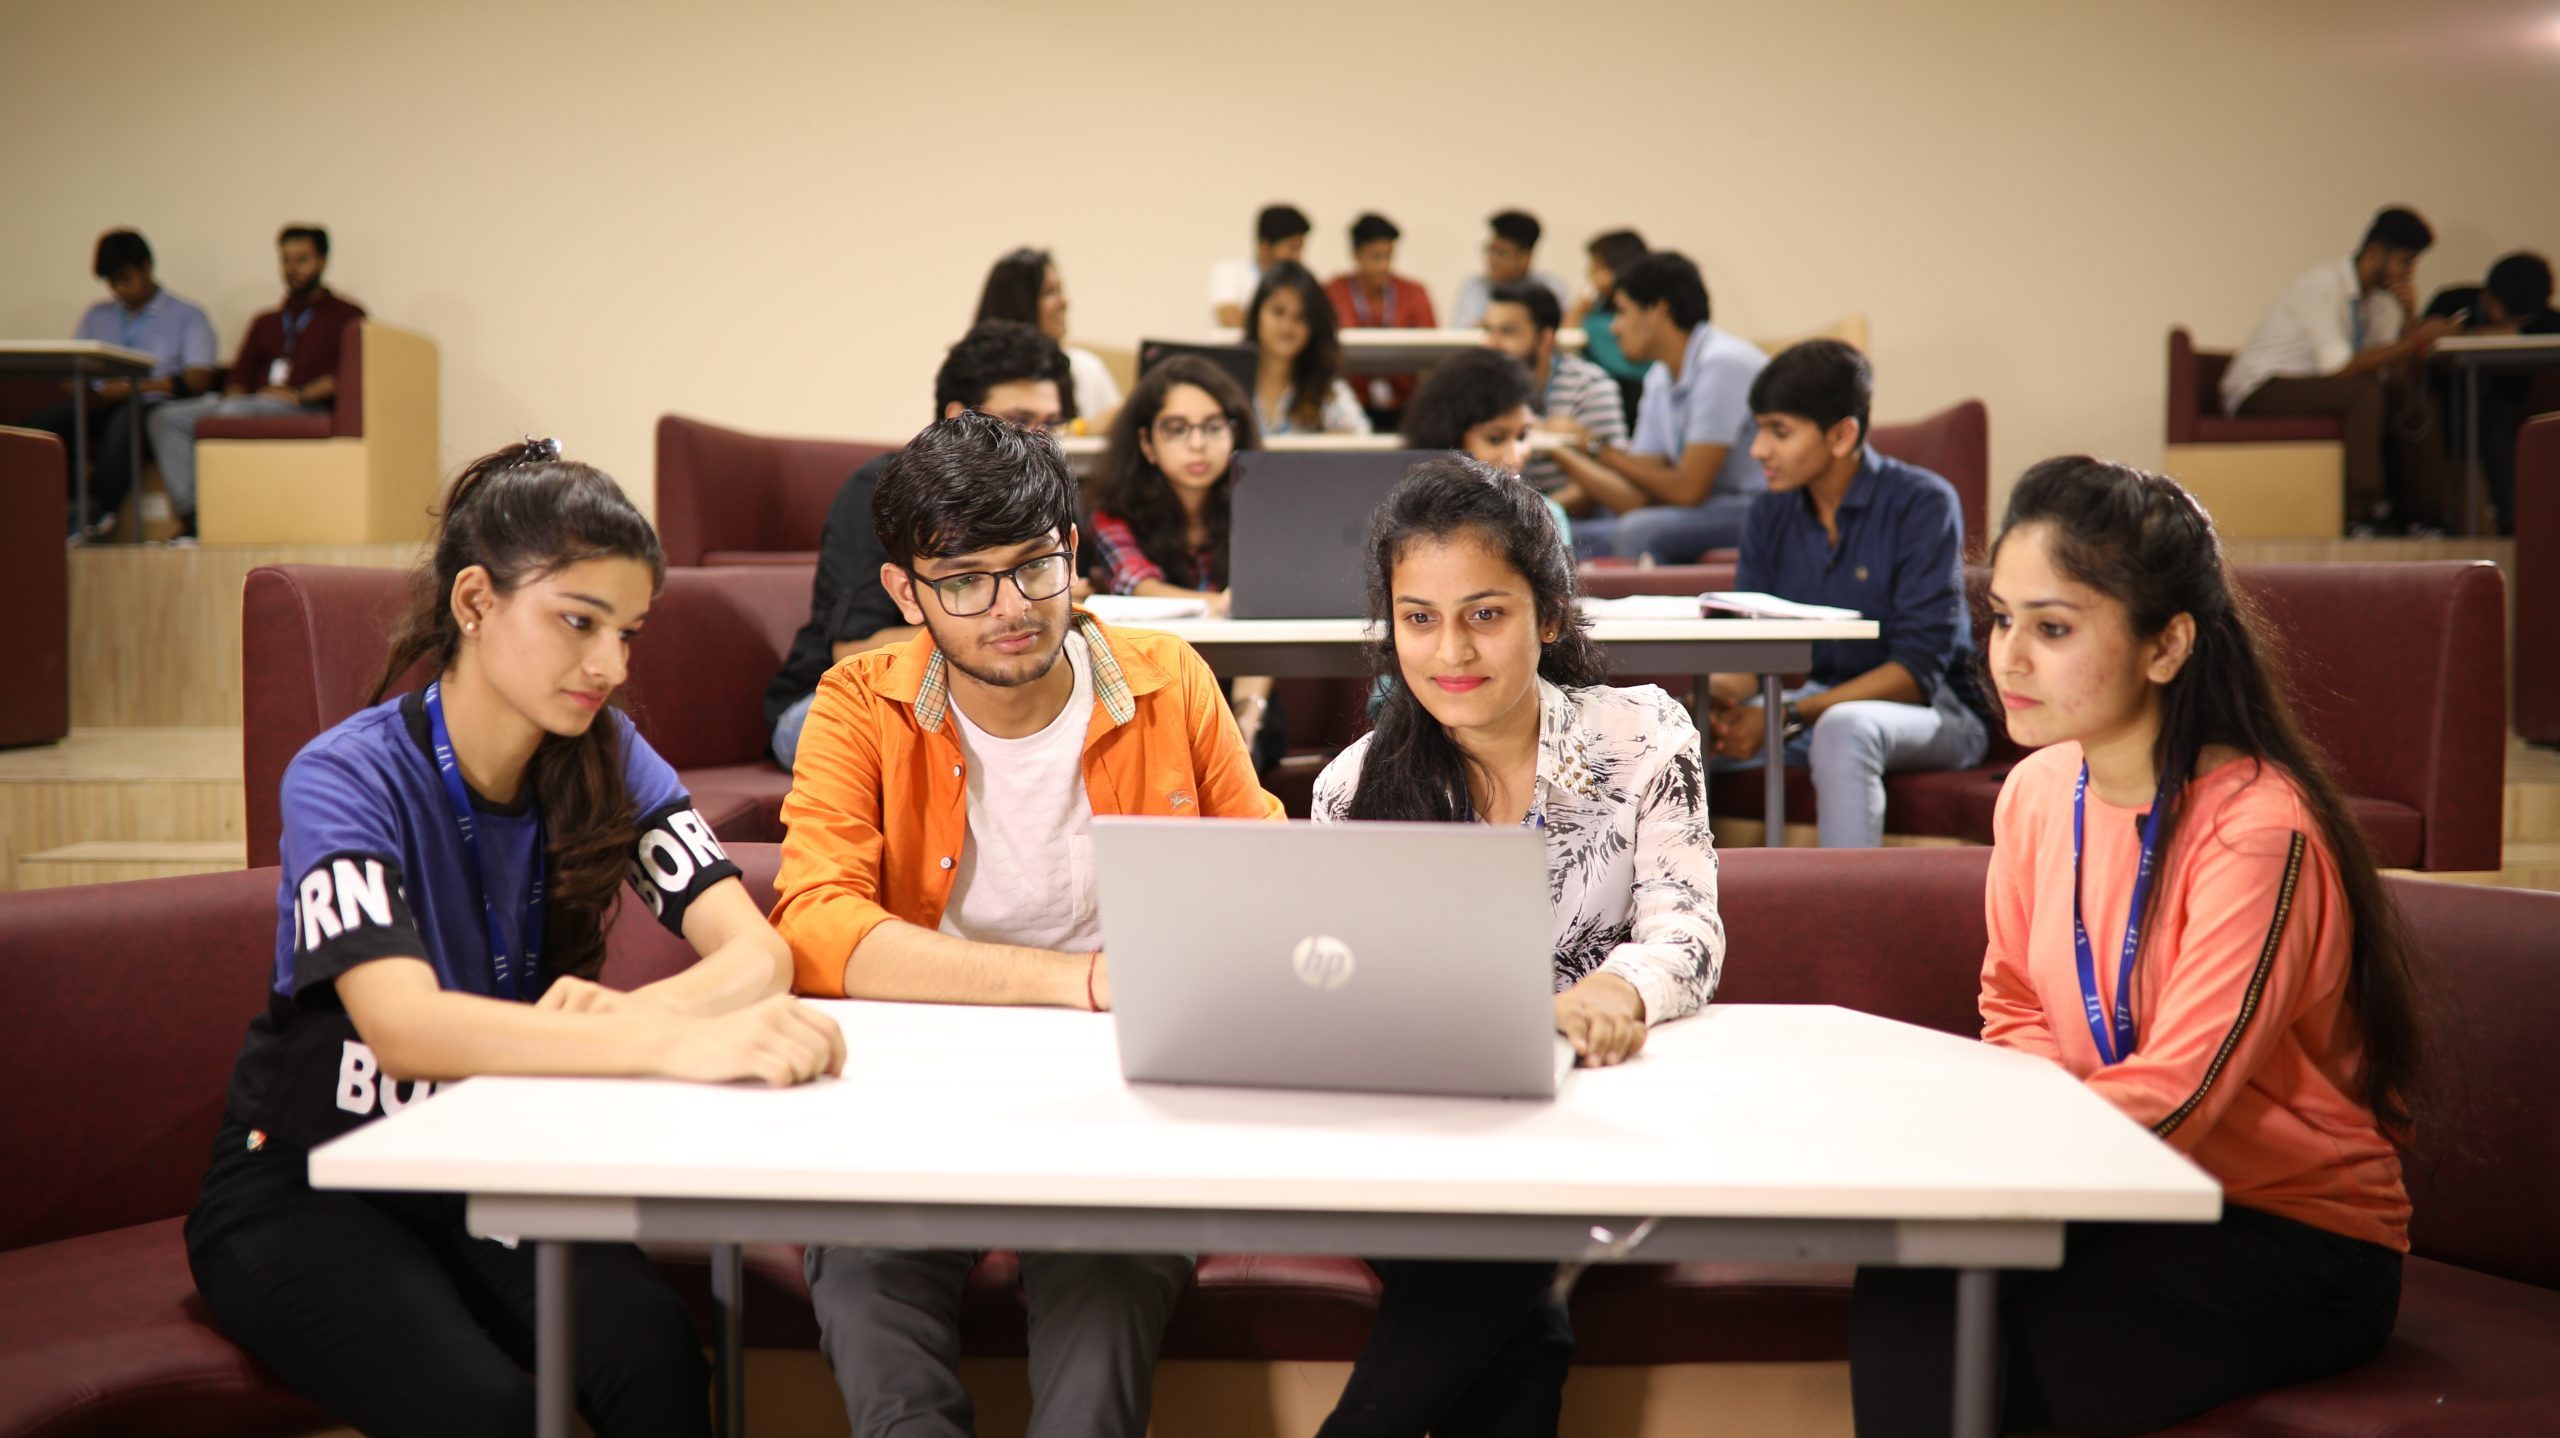 Classroom VIT Bhopal  - Best University in Central India -  class-room-1-scaled